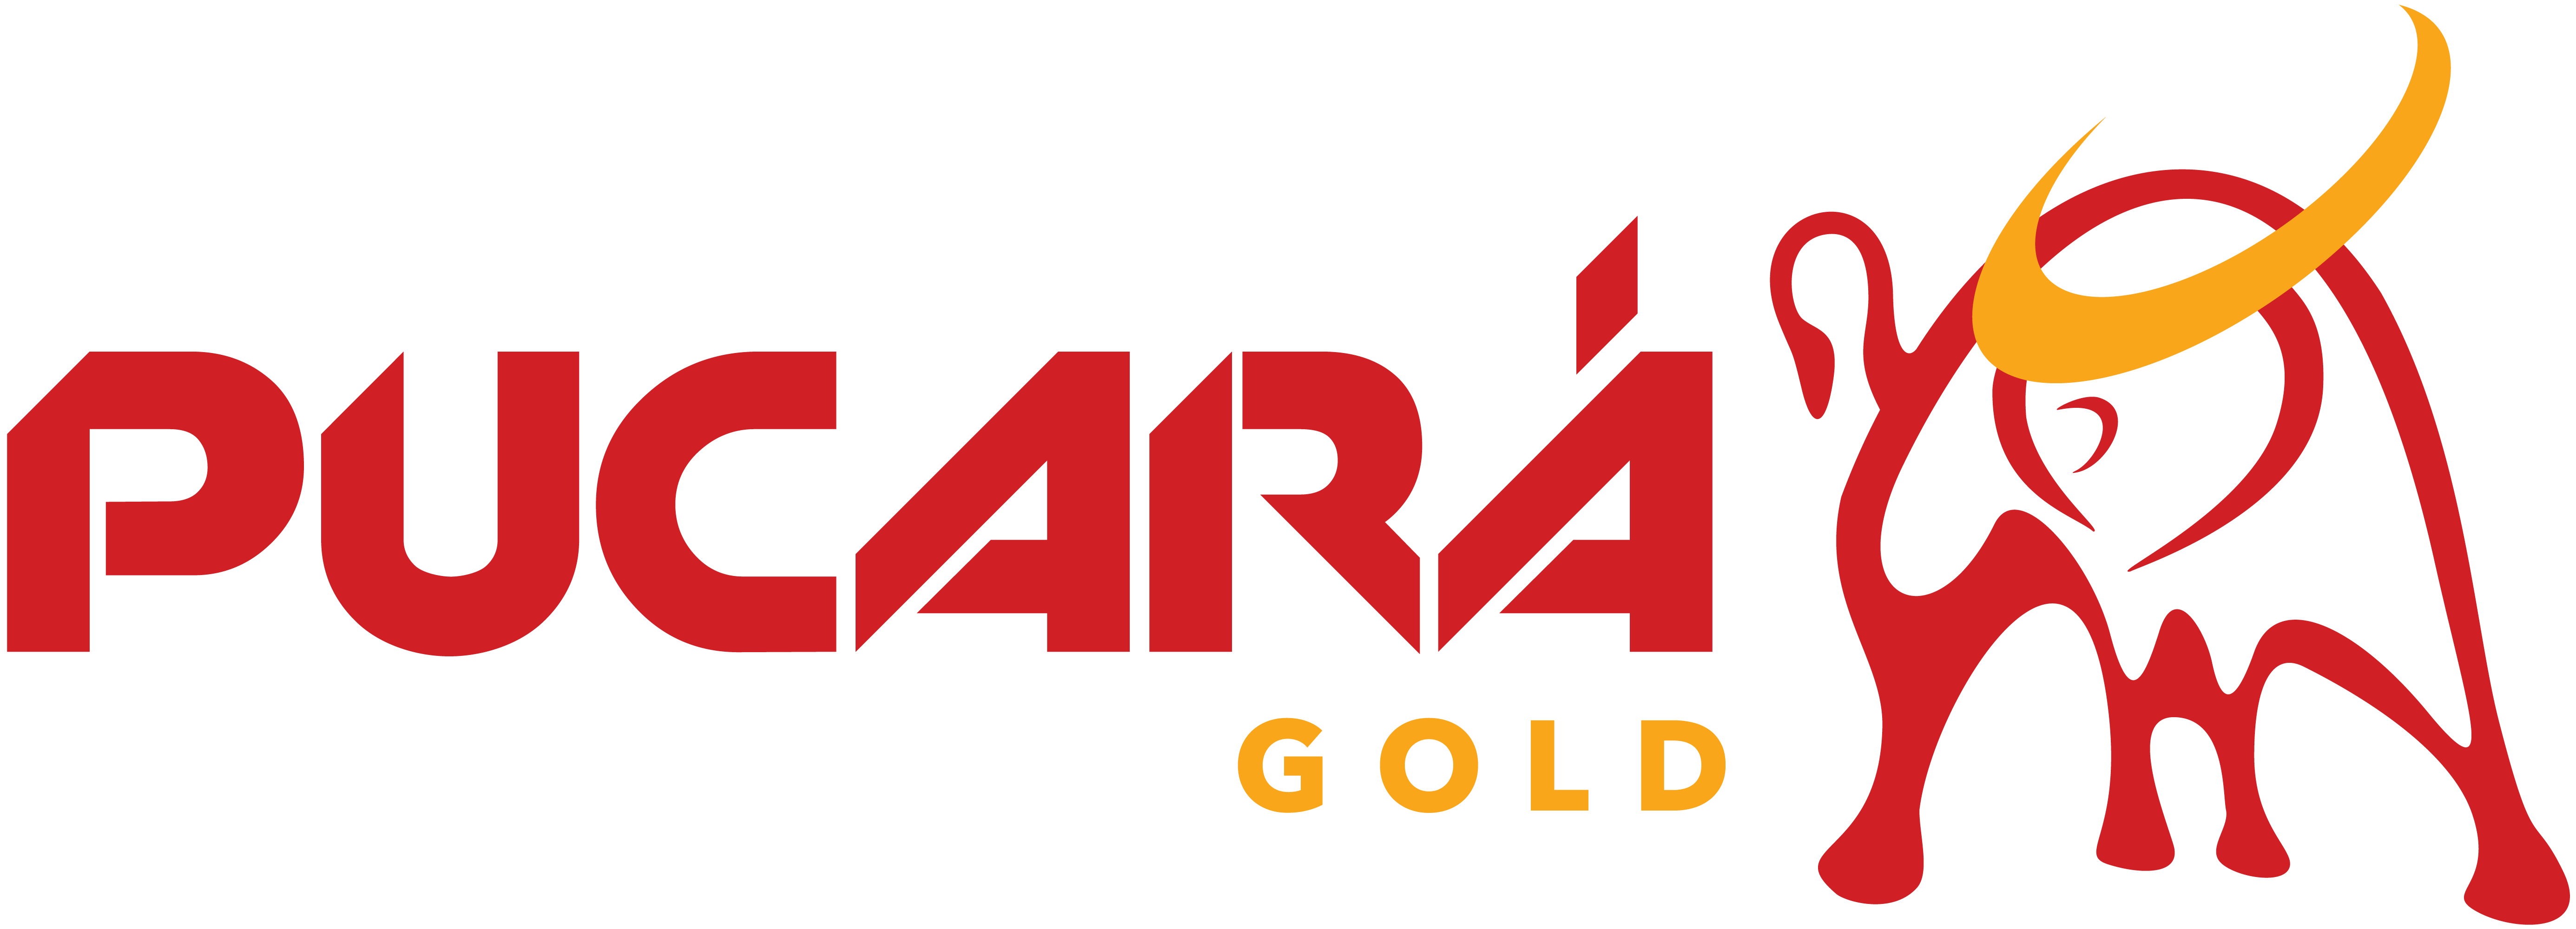 Pucara Gold Ltd.